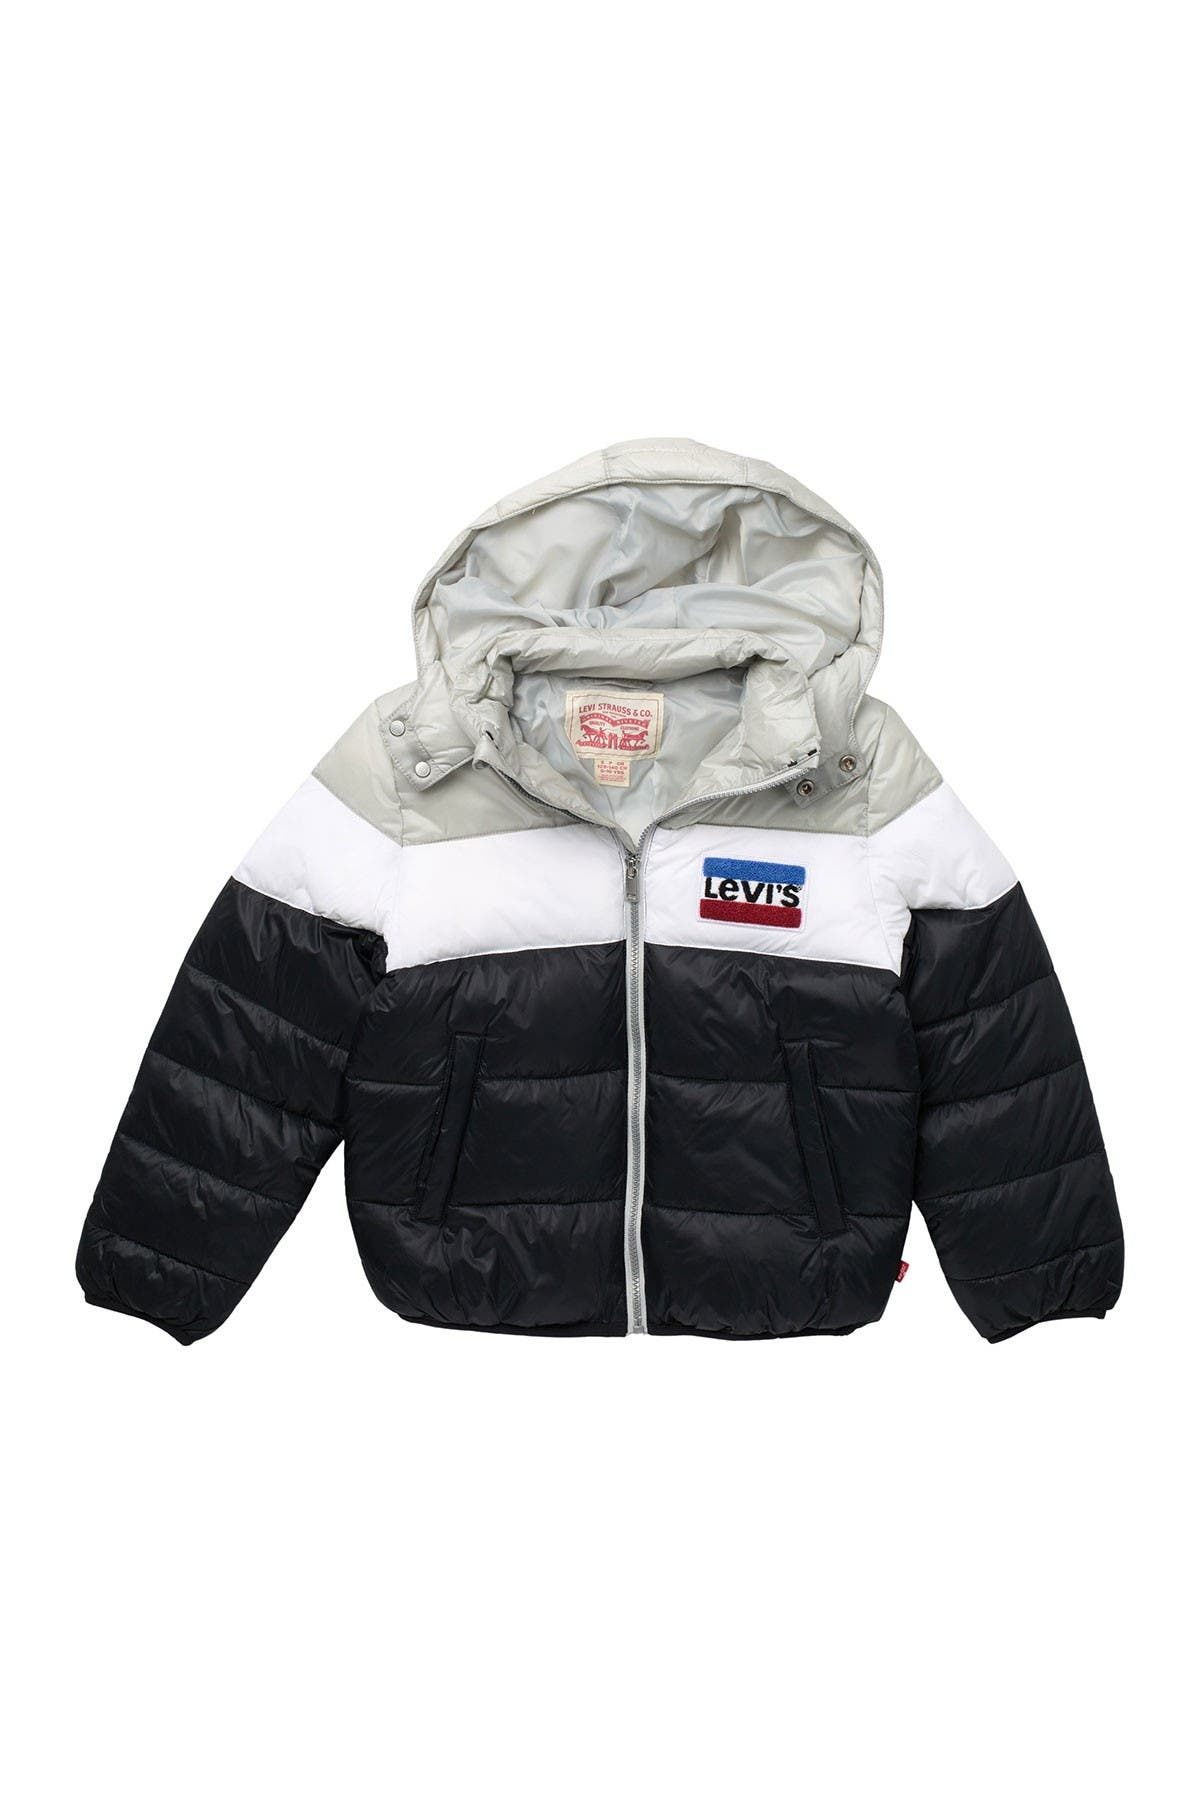 Image of Levi's Chenille Patch Puffer Jacket